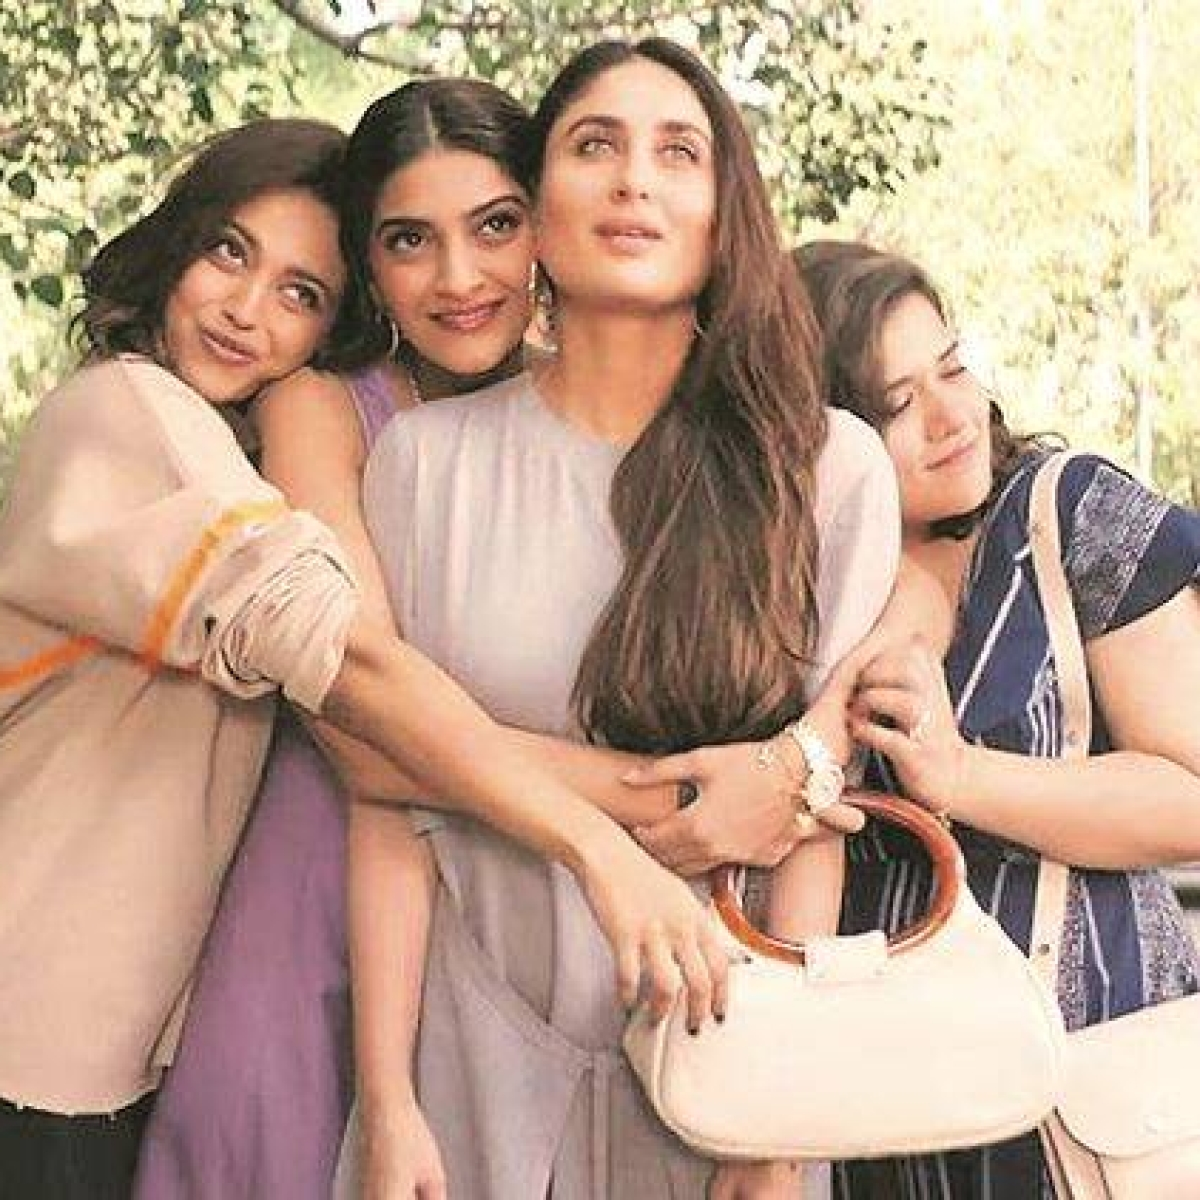 'Veere Di Wedding' cast to come together for a sequel post Kareena Kapoor Khan's due date: Report